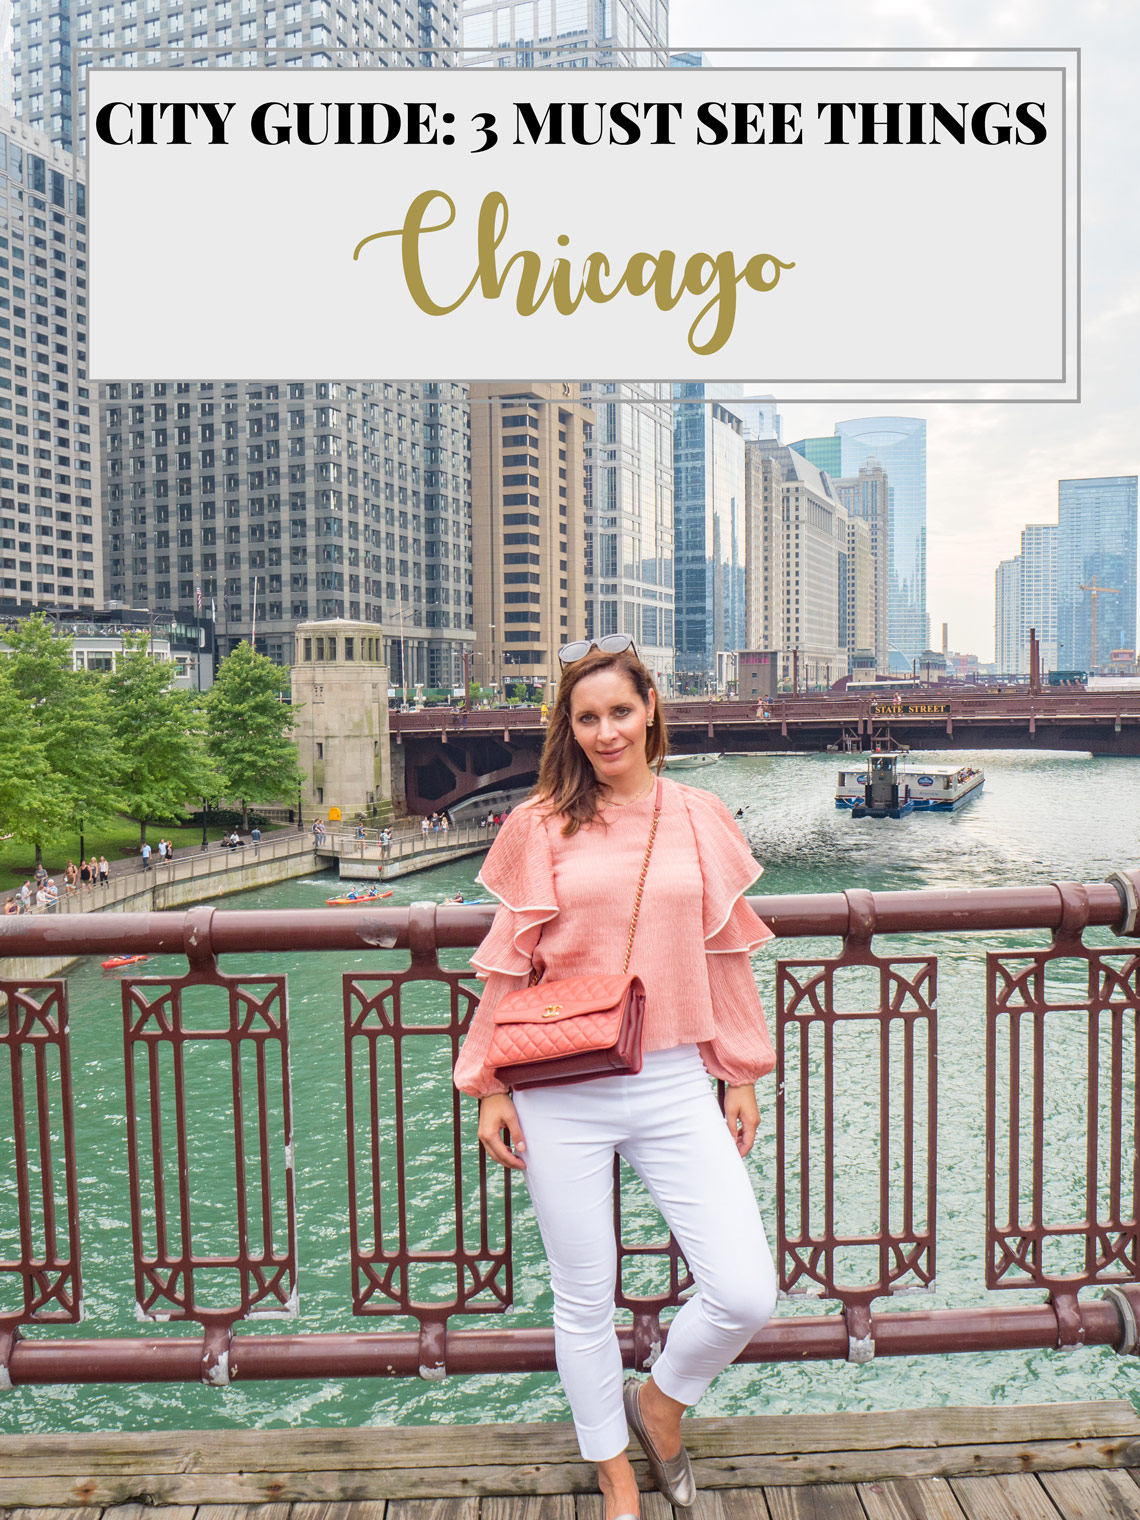 3 must see things in Chicago by Chic Journal